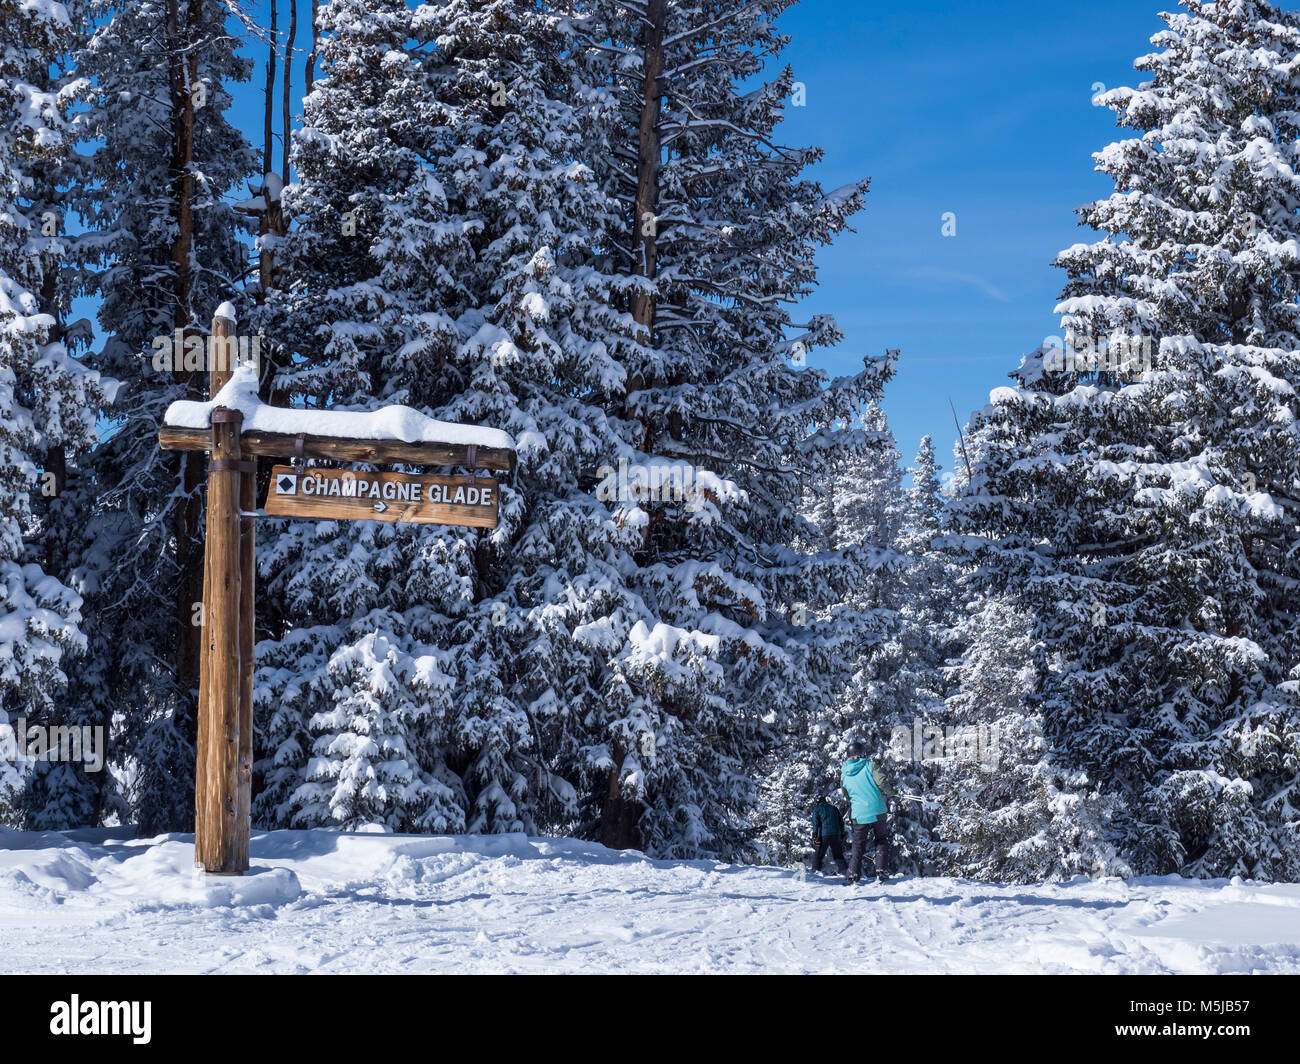 Top of the Champagne Glade Trail, Belle's Camp, Blue Sky Basin, winter, Vail Ski Resort, Vail, Colorado. - Stock Image